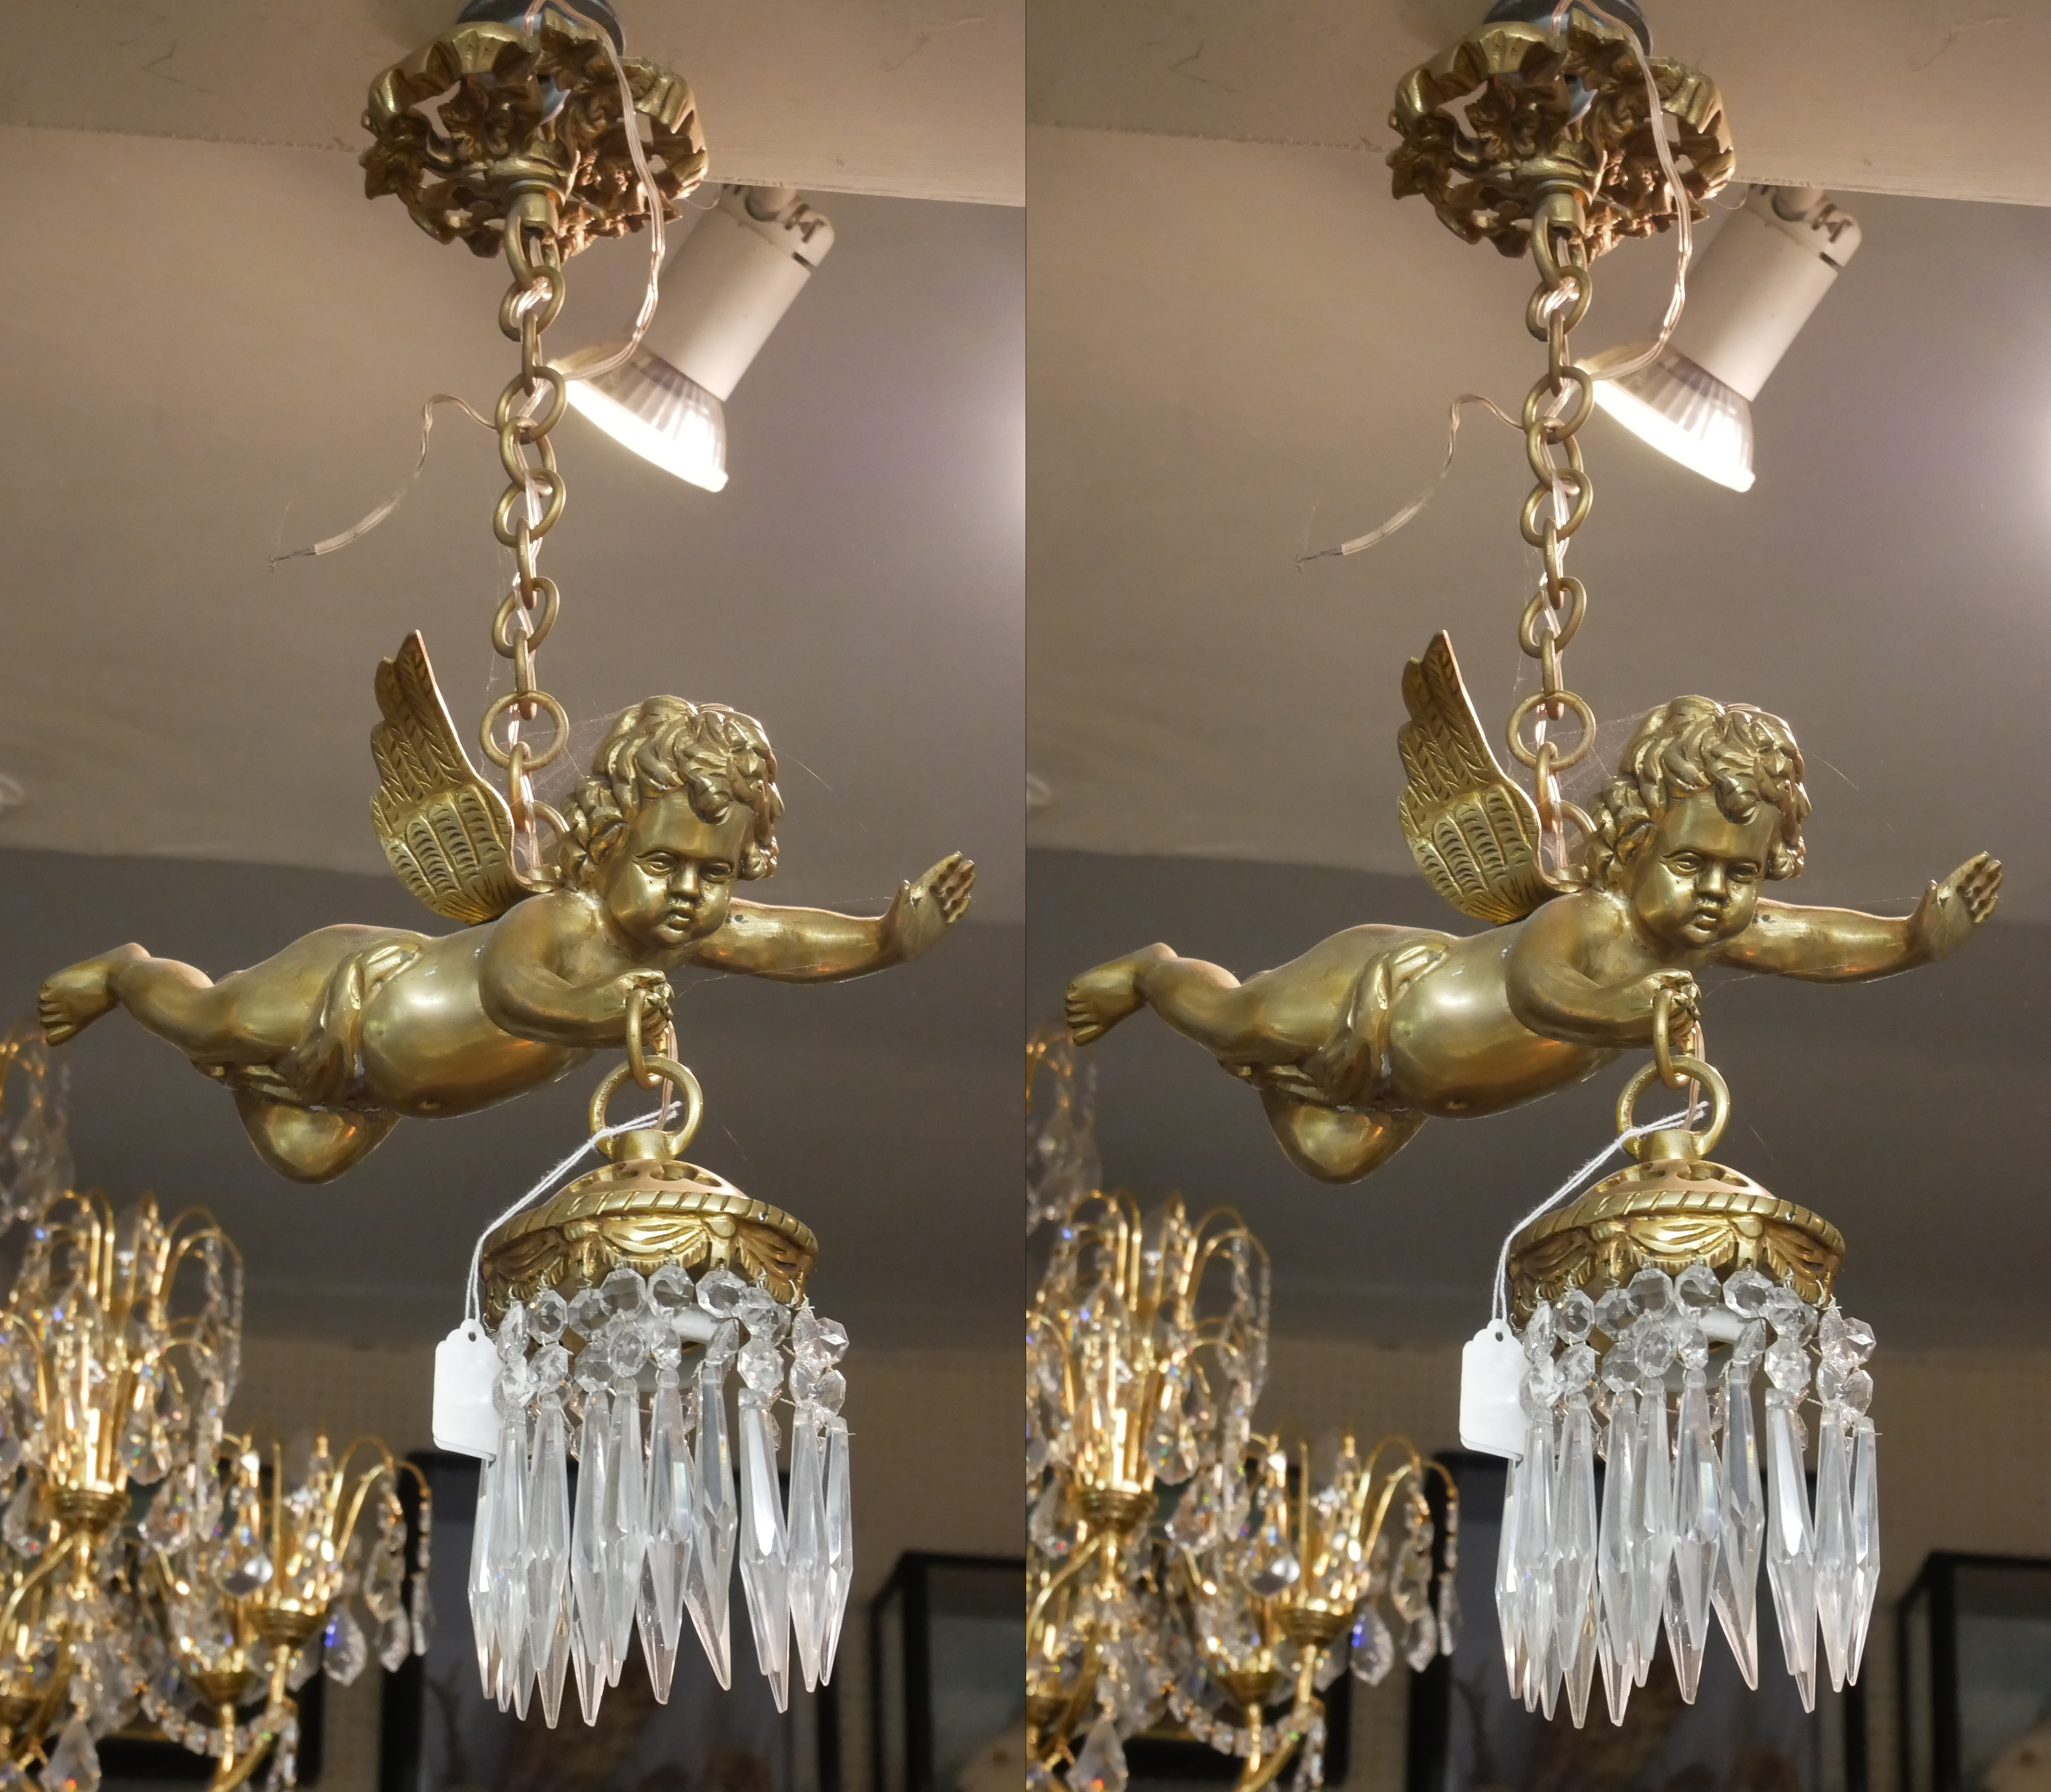 A PAIR OF DECORATIVE GILT BRONZE HANGING CHERUB CHANDELIERS Each holding a single light with crystal